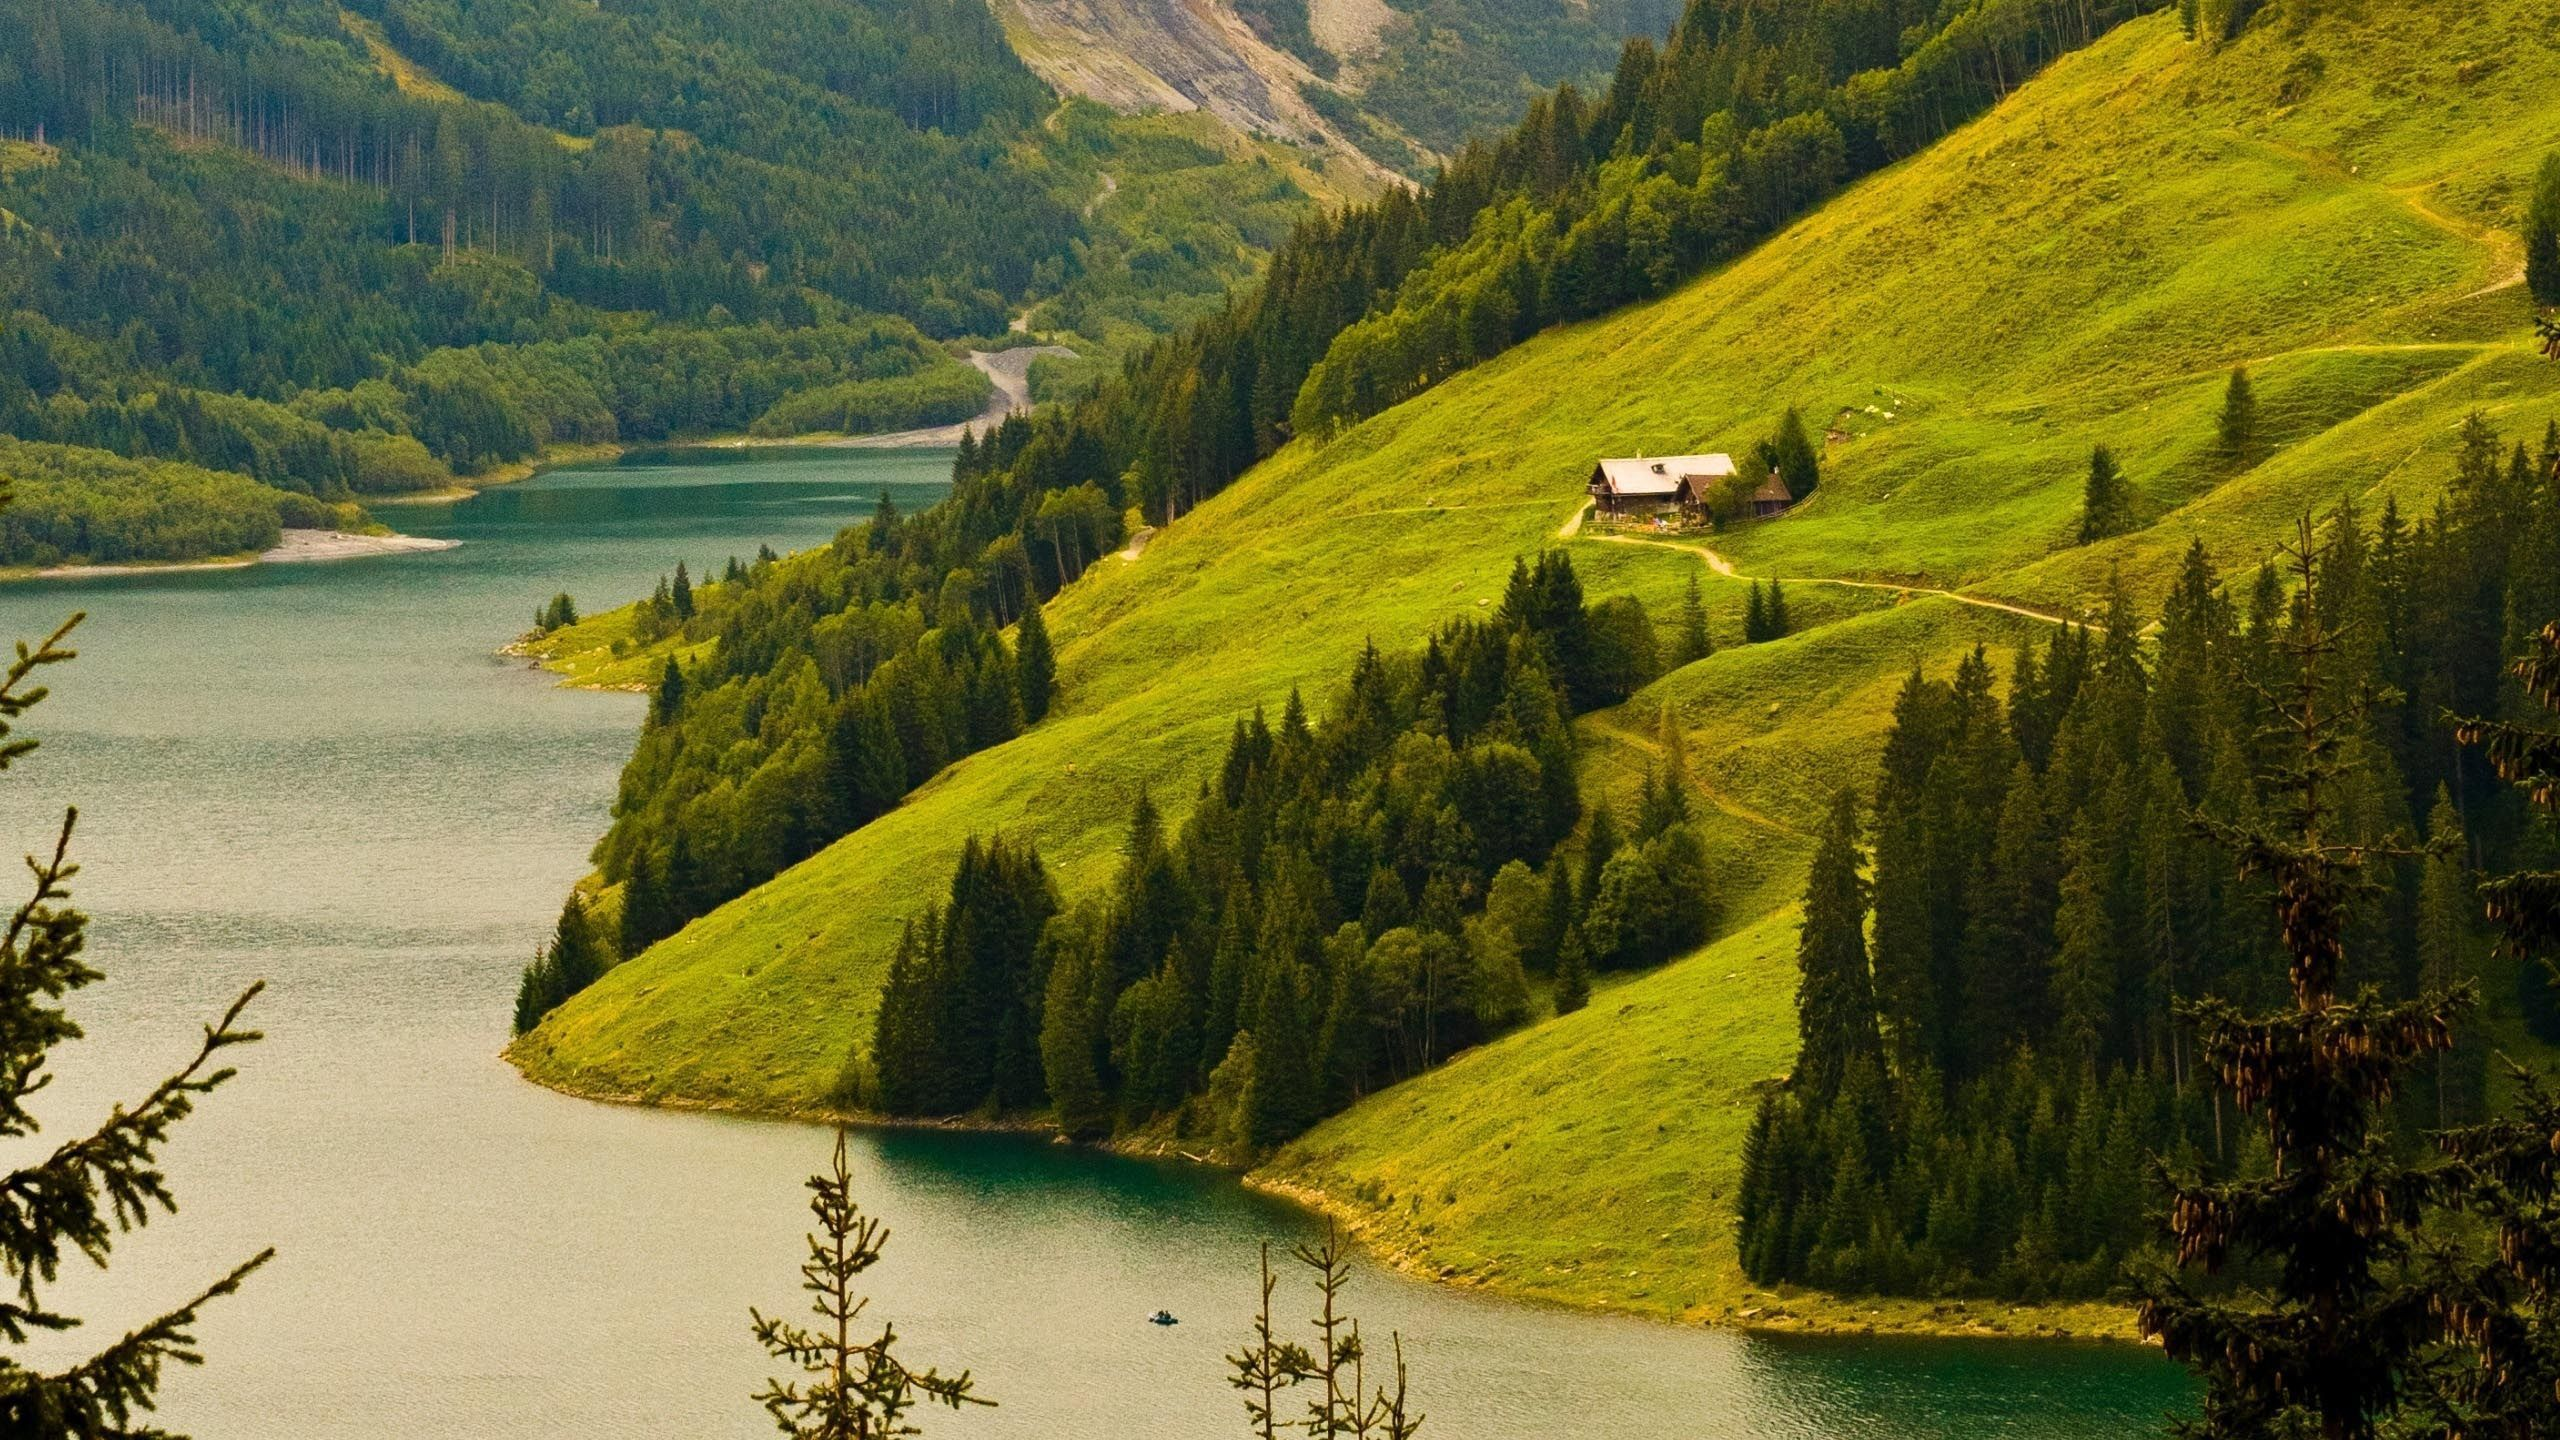 32800 download wallpaper Landscape, Rivers, Mountains screensavers and pictures for free